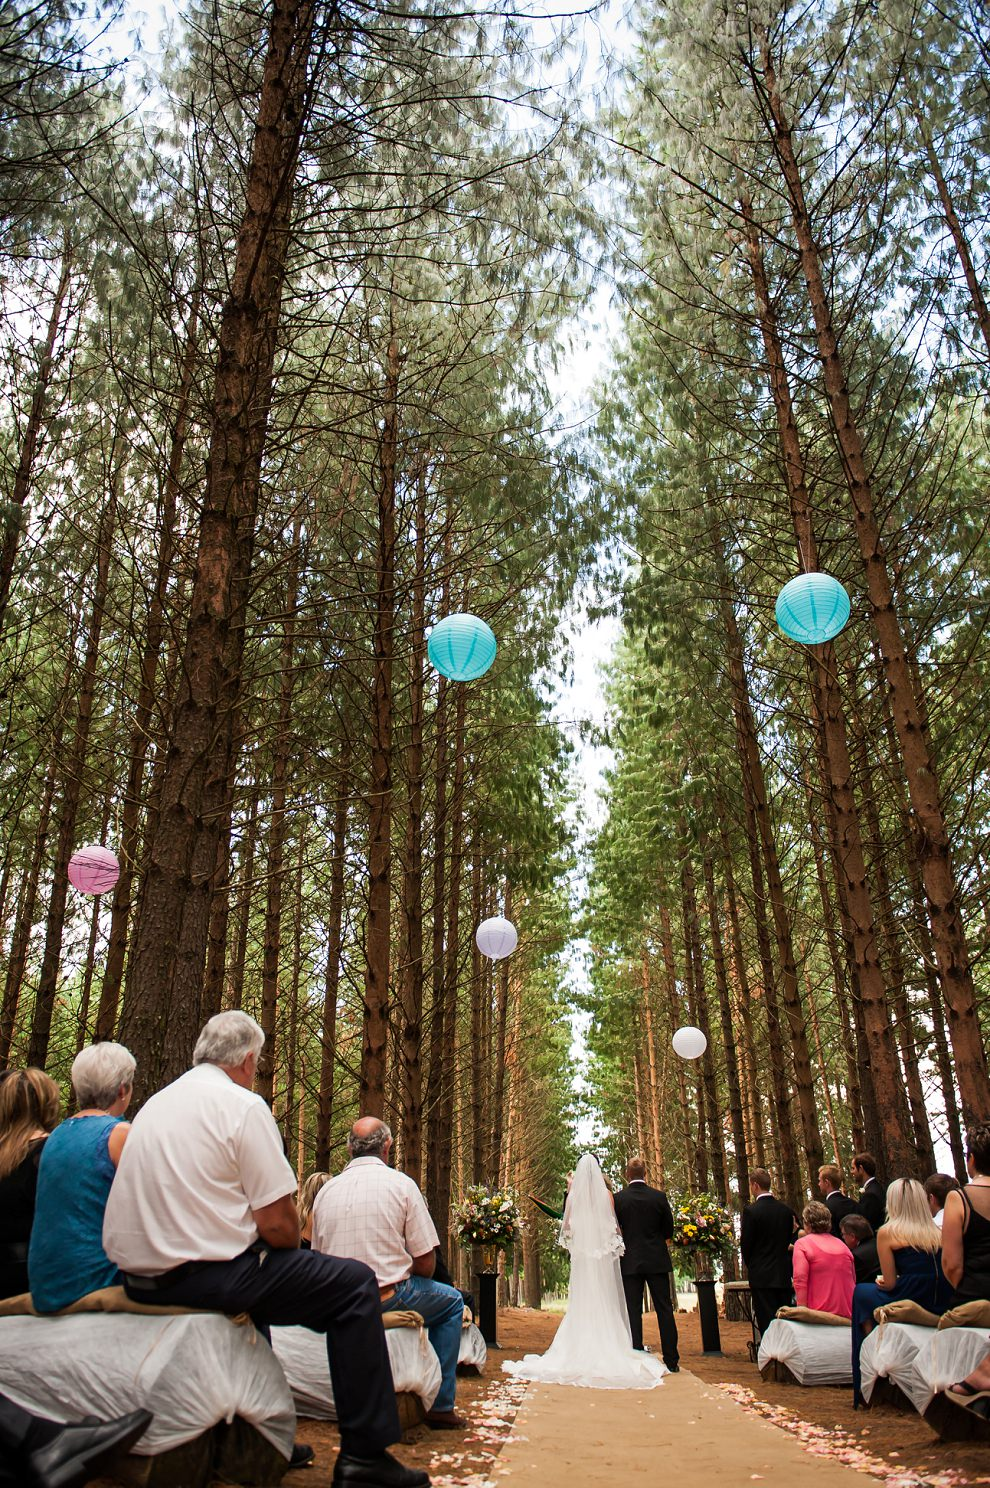 Anja-Mike-Forest-Wedding-South-Africa-42